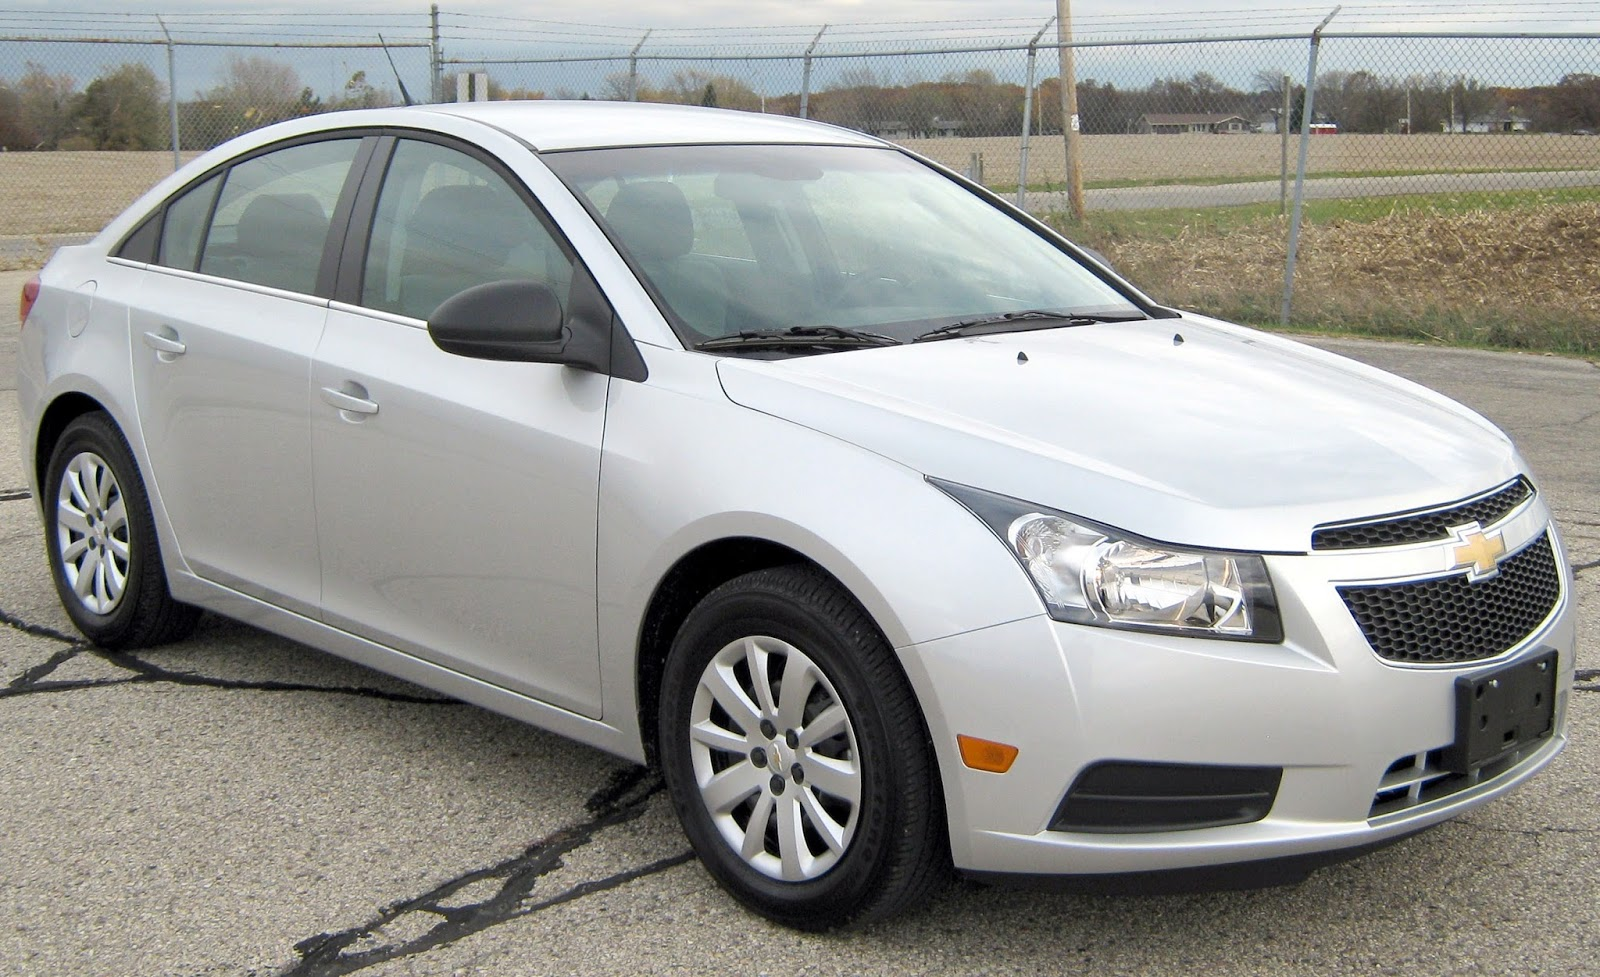 chevrolet cruze ls sedan images car hd wallpapers prices review. Black Bedroom Furniture Sets. Home Design Ideas